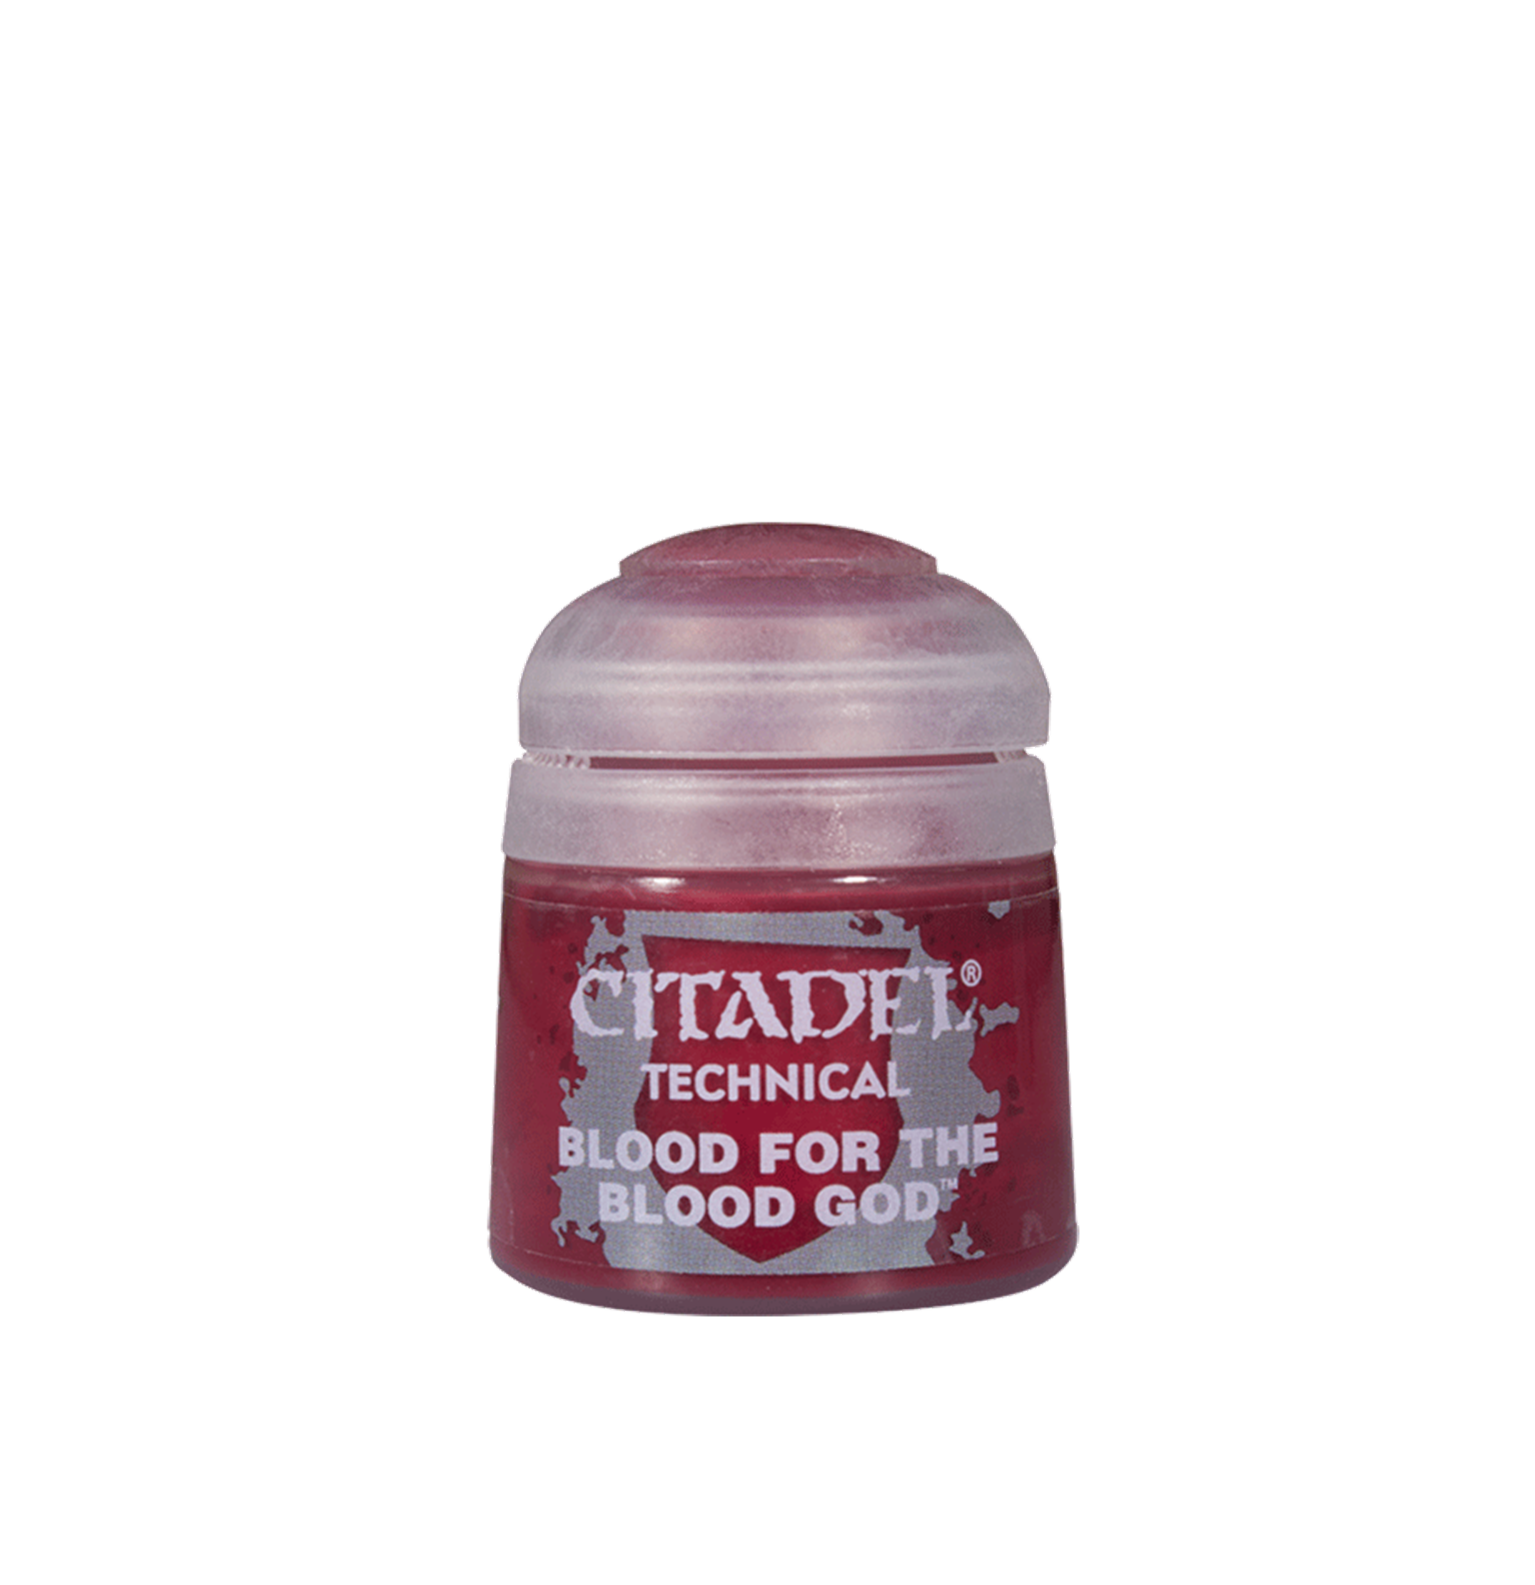 CITADEL TECHNICAL Blood For The Blood God PAINT POT